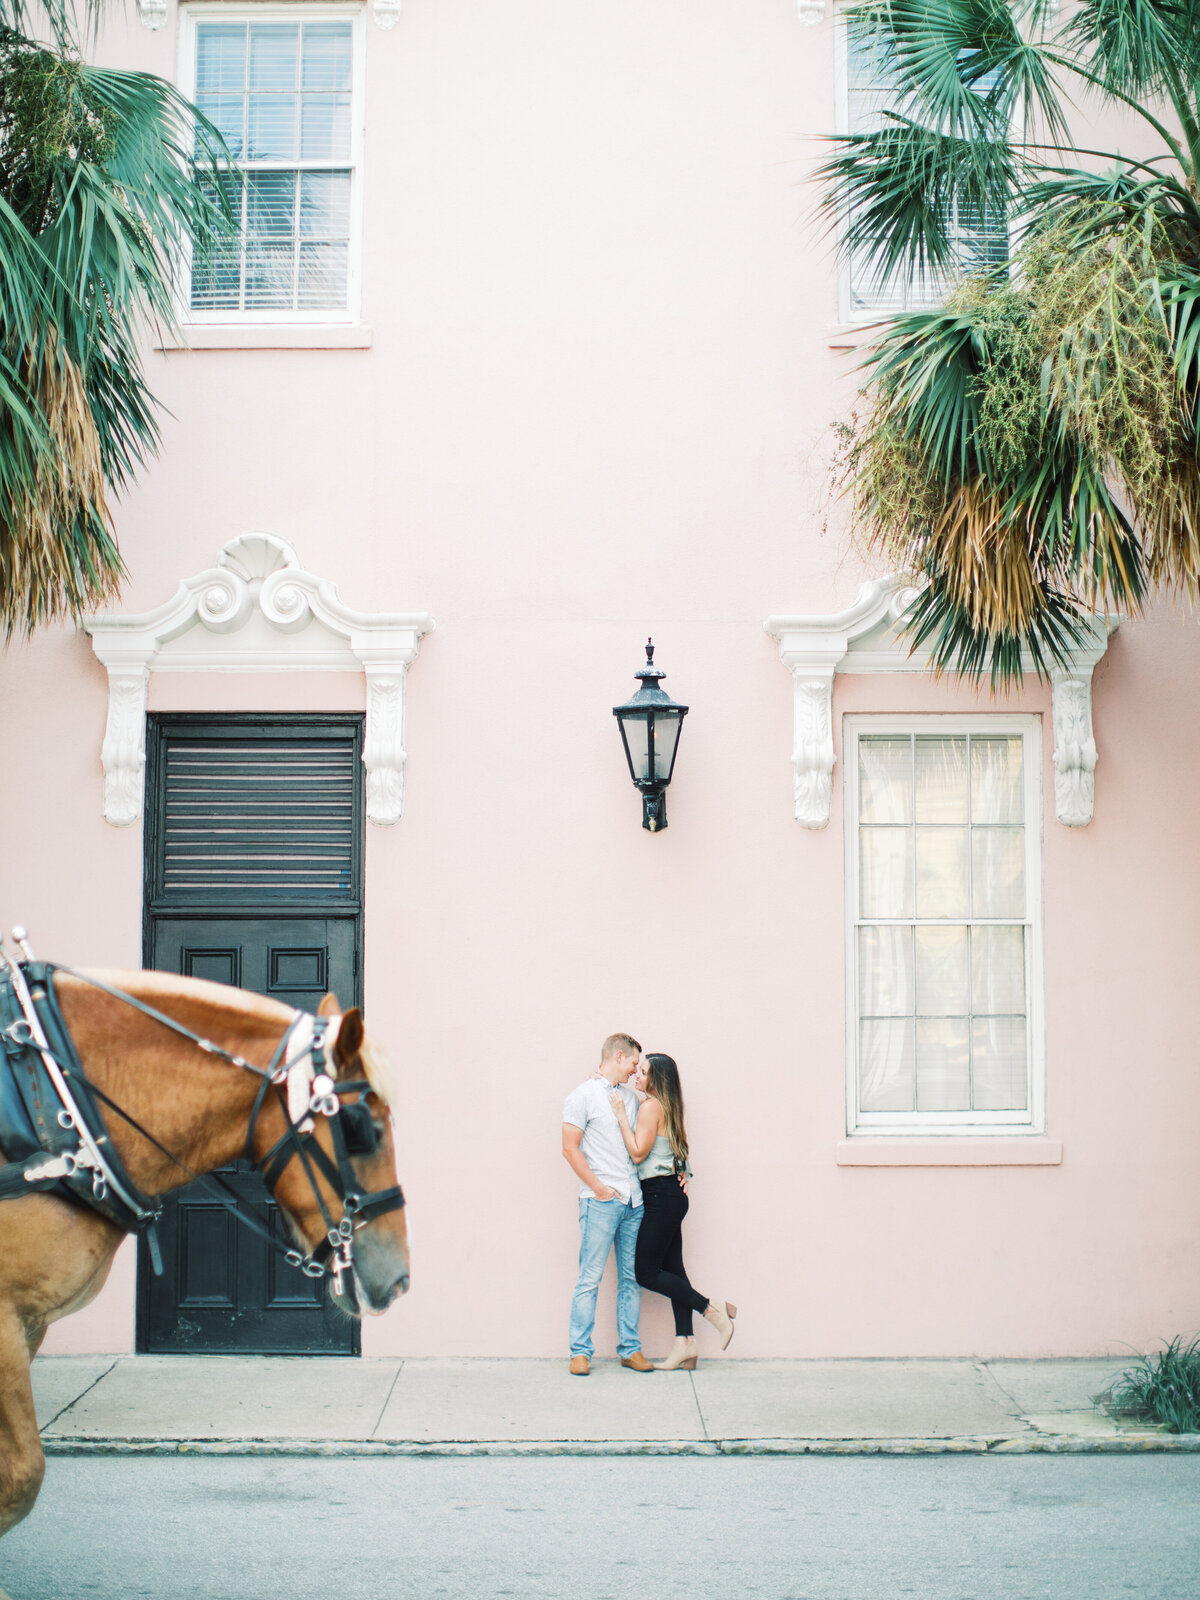 Charleston Wedding Photographer | Savannah Wedding Photographer | Beaufort Wedding Photographer | Hilton Head Island Wedding Photographer | San Luis Obispo Wedding Photographer | Santa Barbara Wedding Photographer _ ARP -19